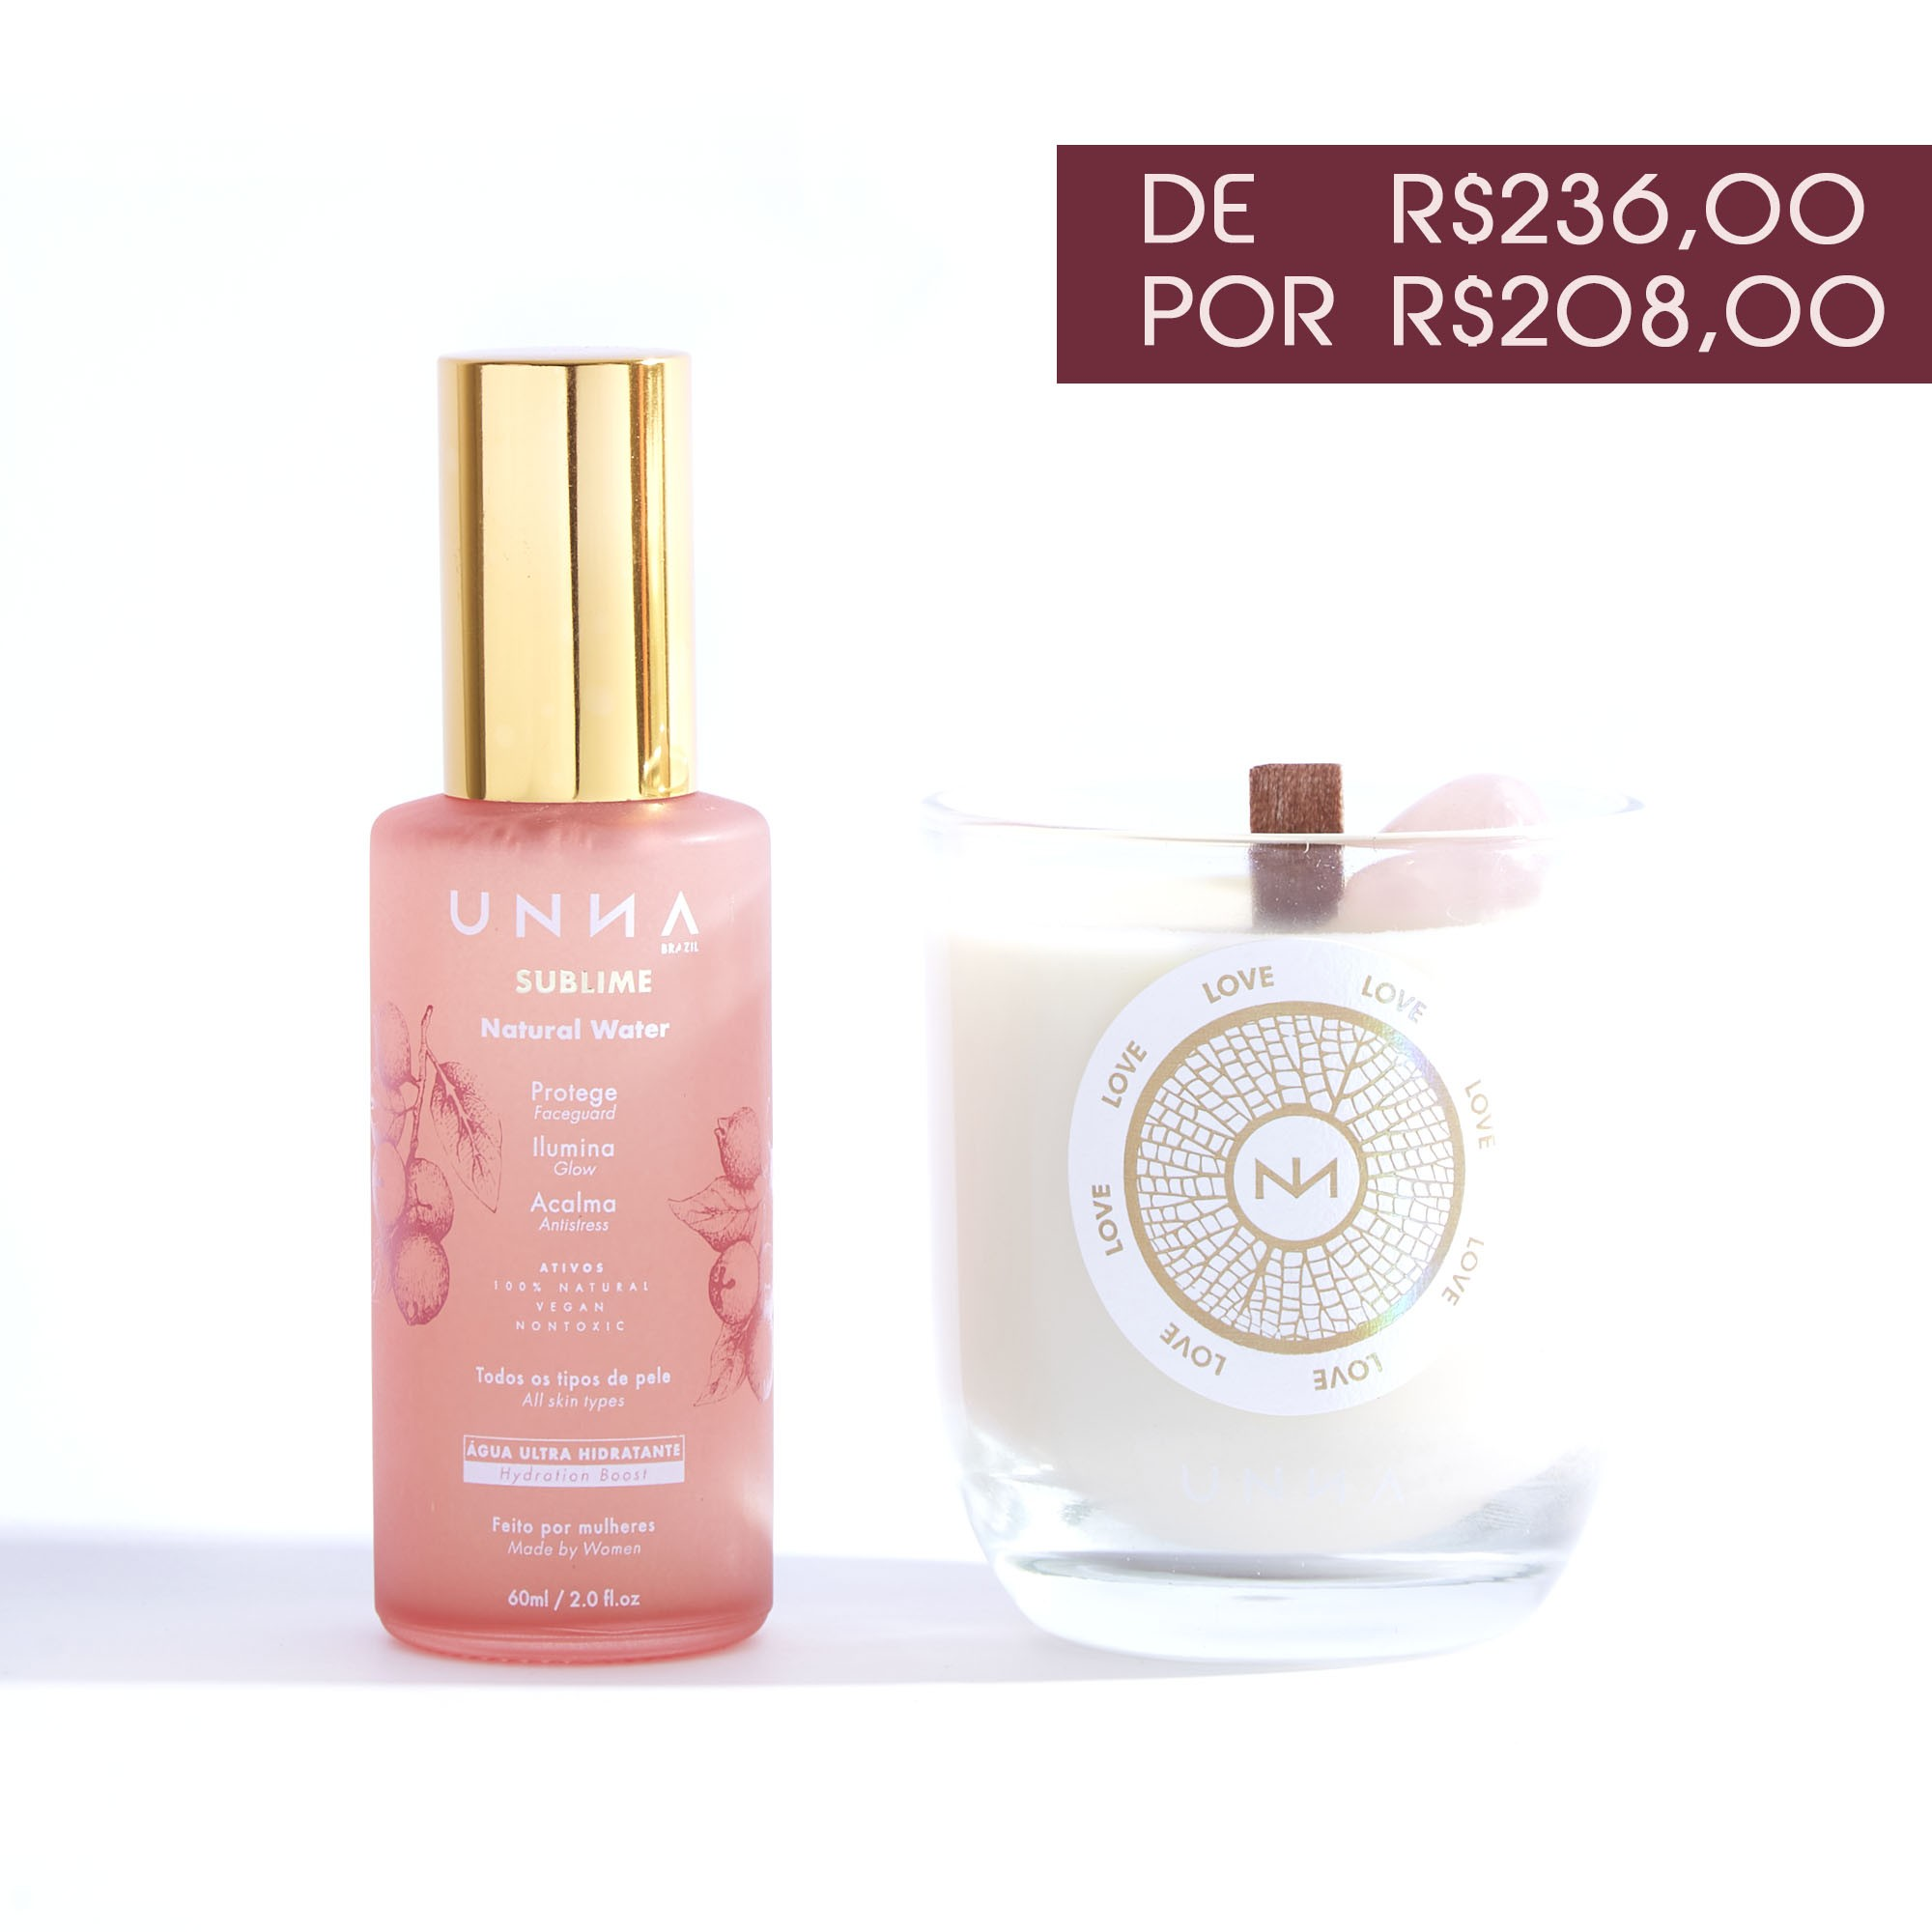 RITUAL ÁGUA SUBLIME 60ml + VELA LOVE